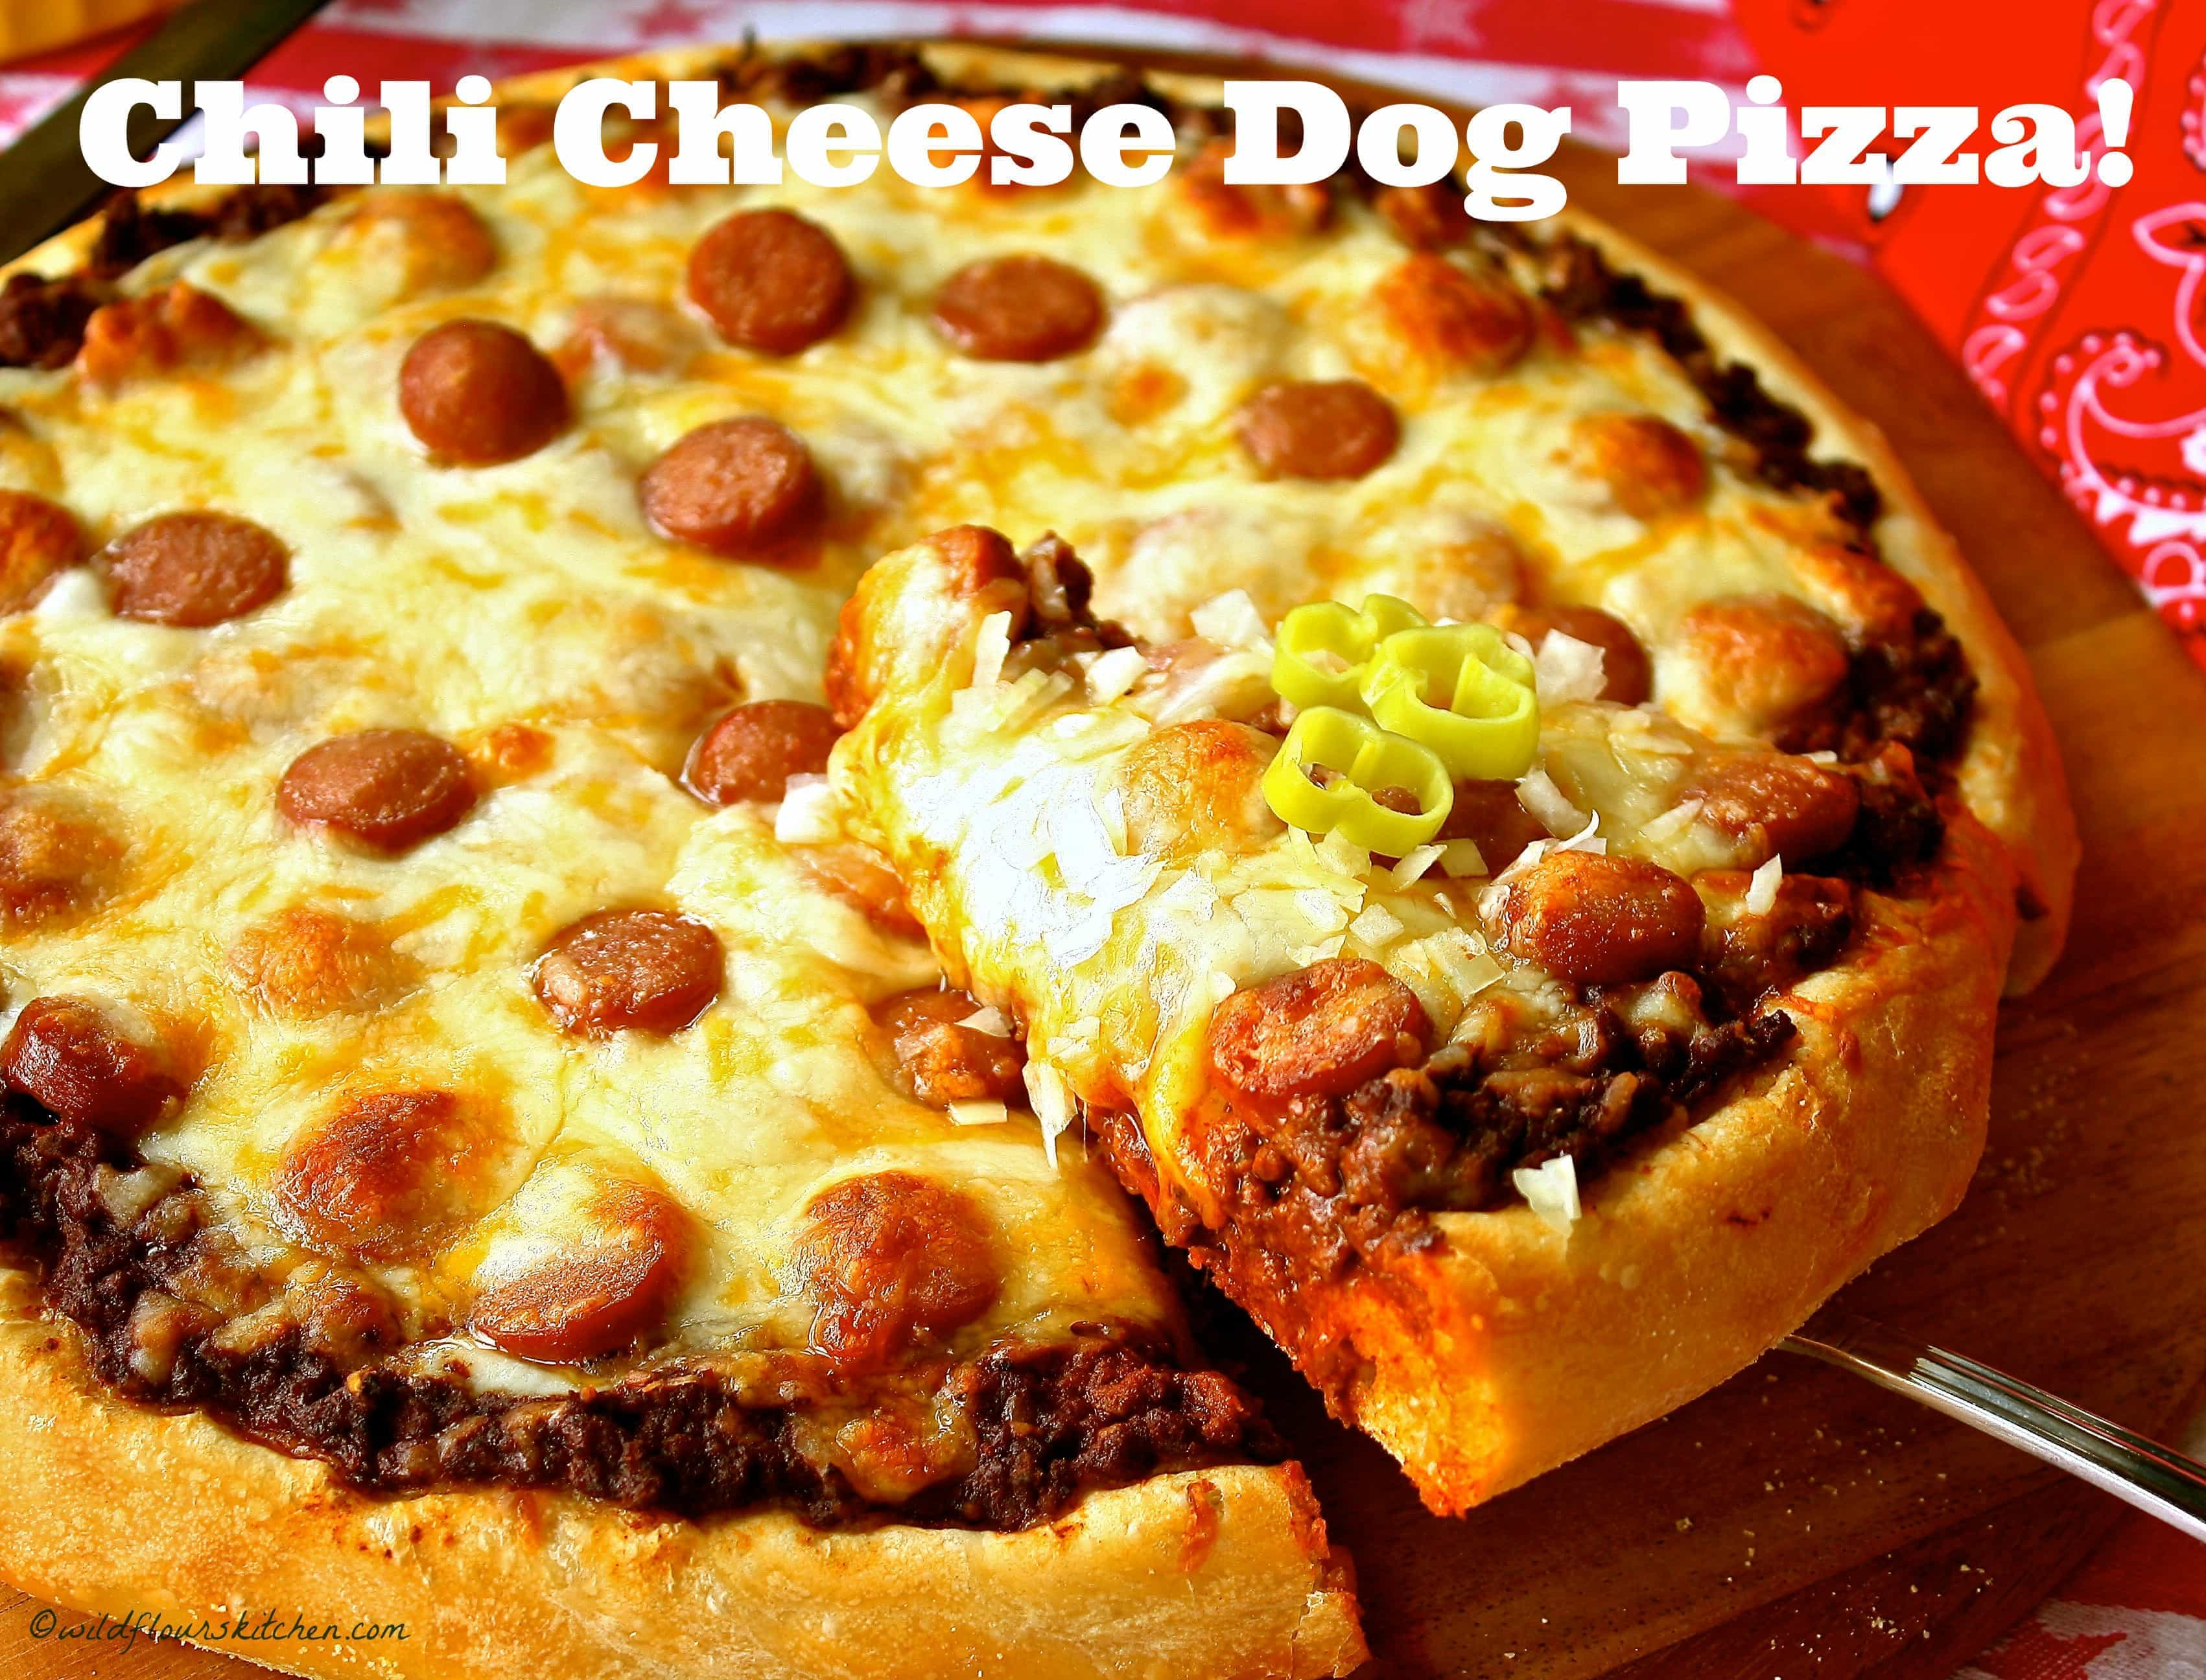 Divine You Just Might Want To Chili Cheese Dog Pizza Cottage Kitchen Can Dogs This My This It Was That Crazy I D Pancreatitis Eat Cottage Cheese Can Dogs Eat Cottage Cheese Everyday bark post Can Dogs Eat Cottage Cheese